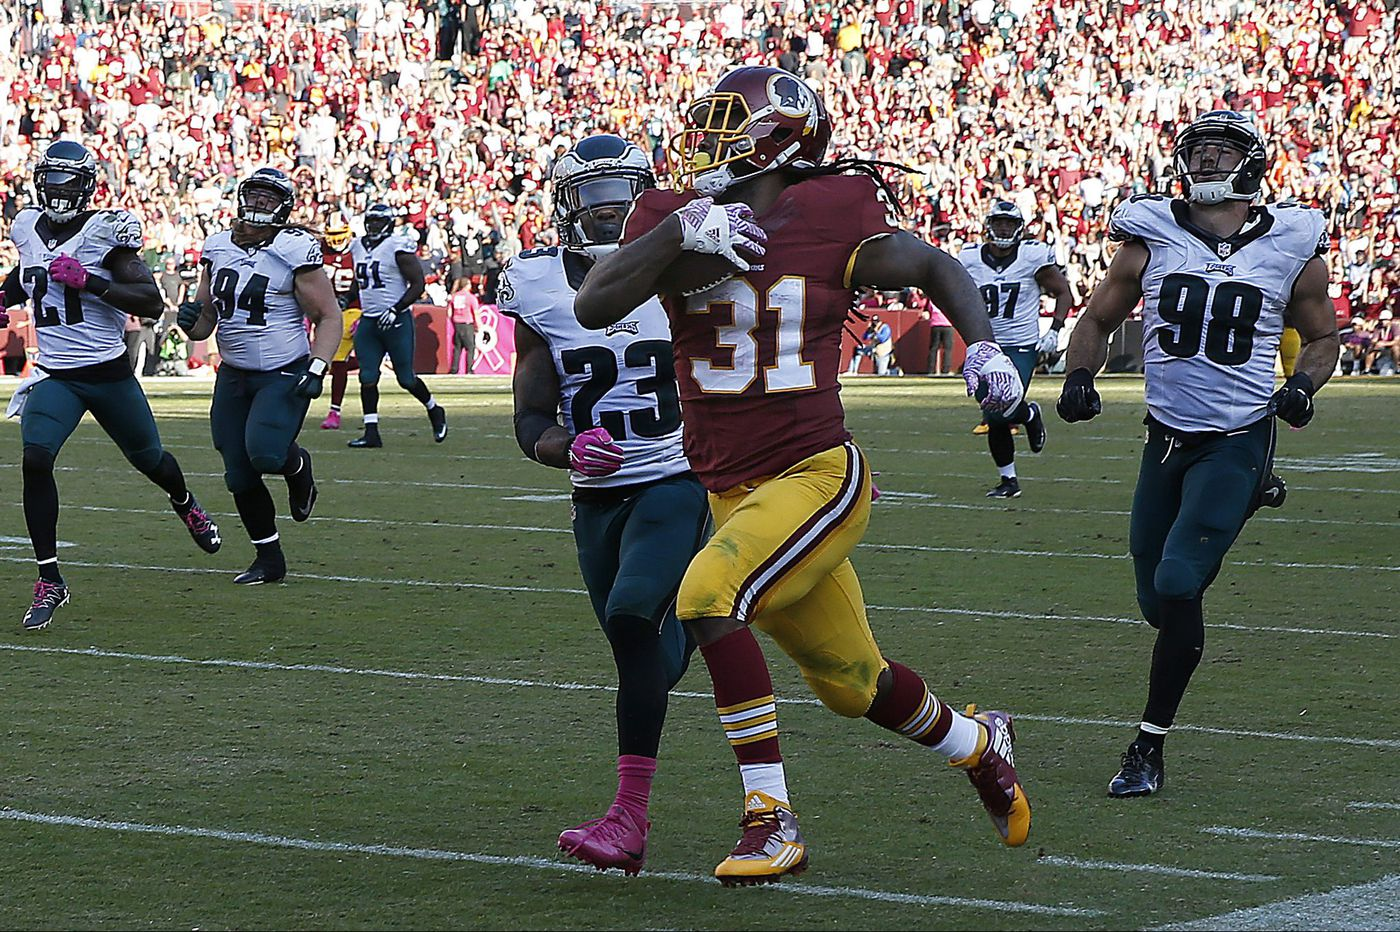 Matt Jones says he's ready to carry the load for Eagles at New England